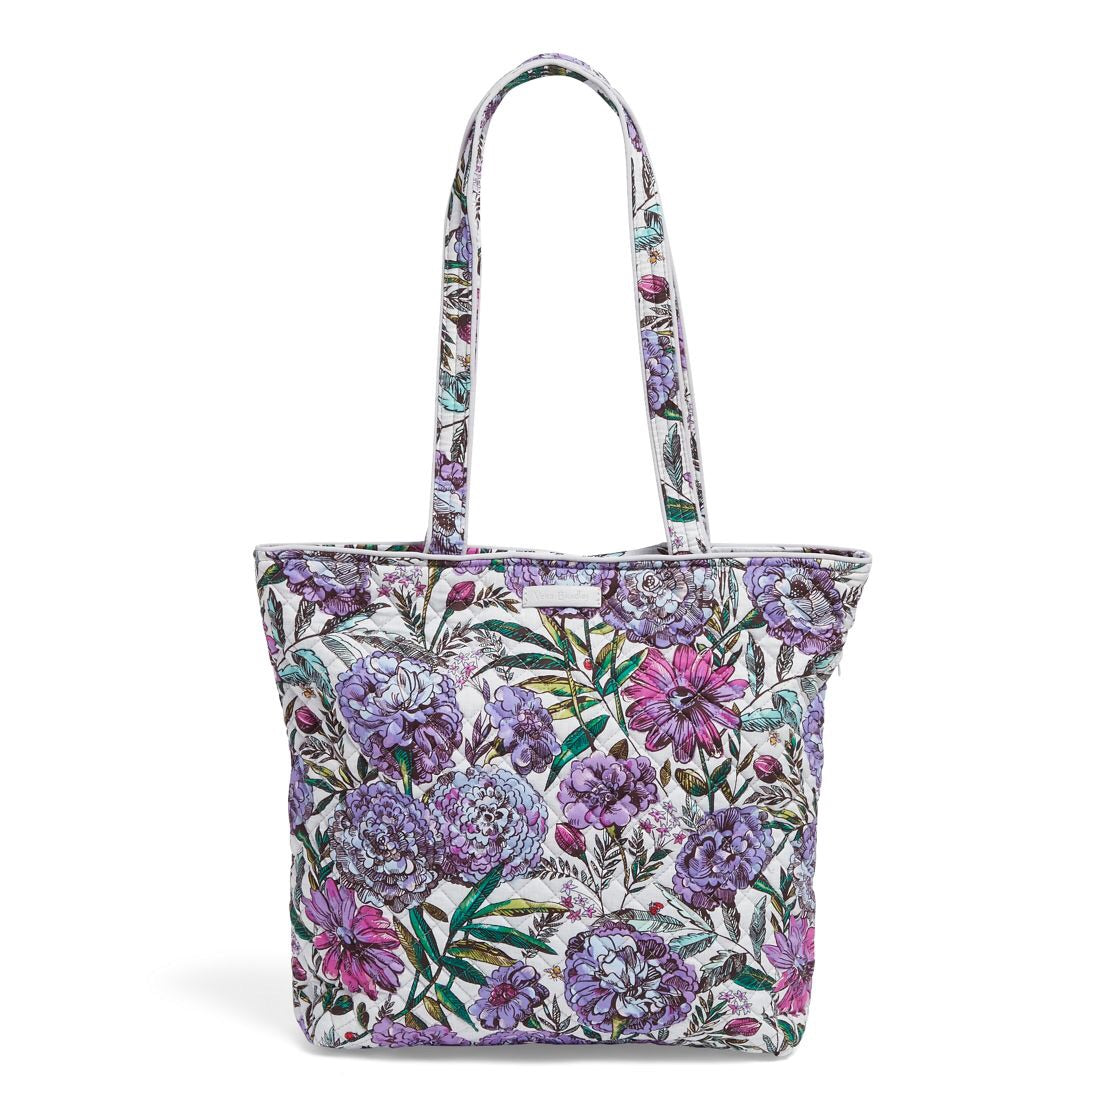 Iconic Tote Bag - Lavender Meadow